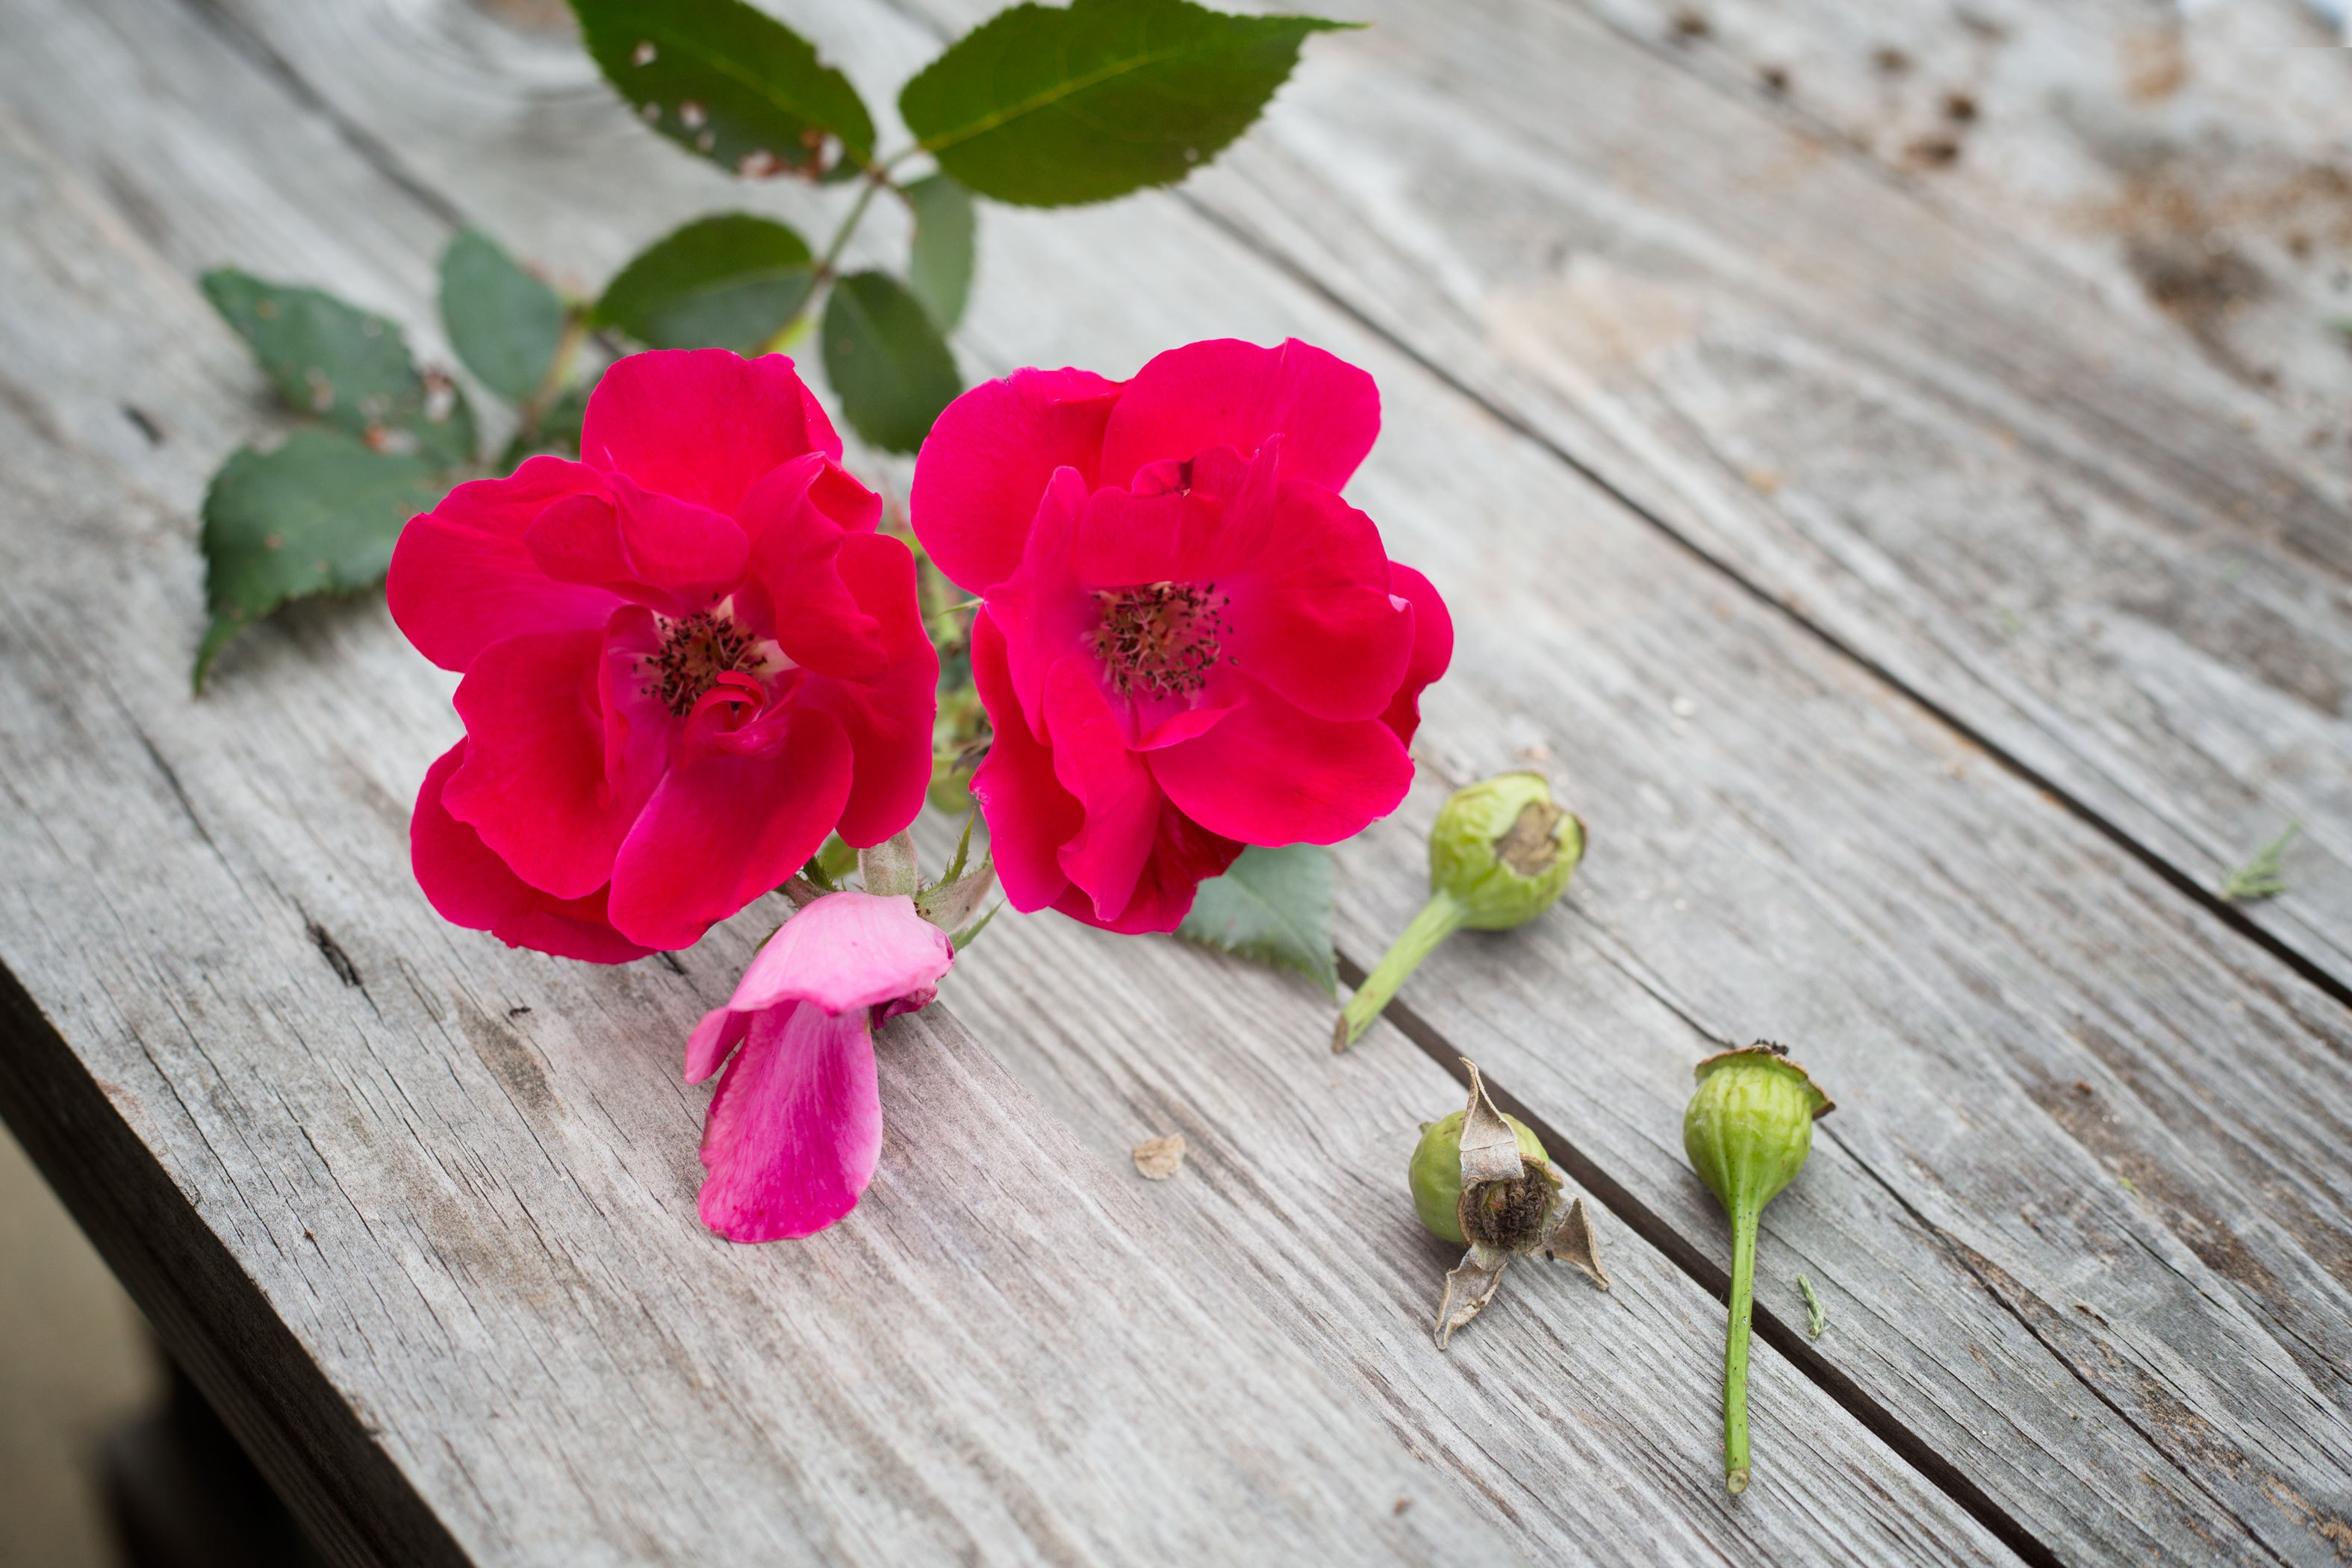 How To Plant Rose Seeds With Pictures Ehow